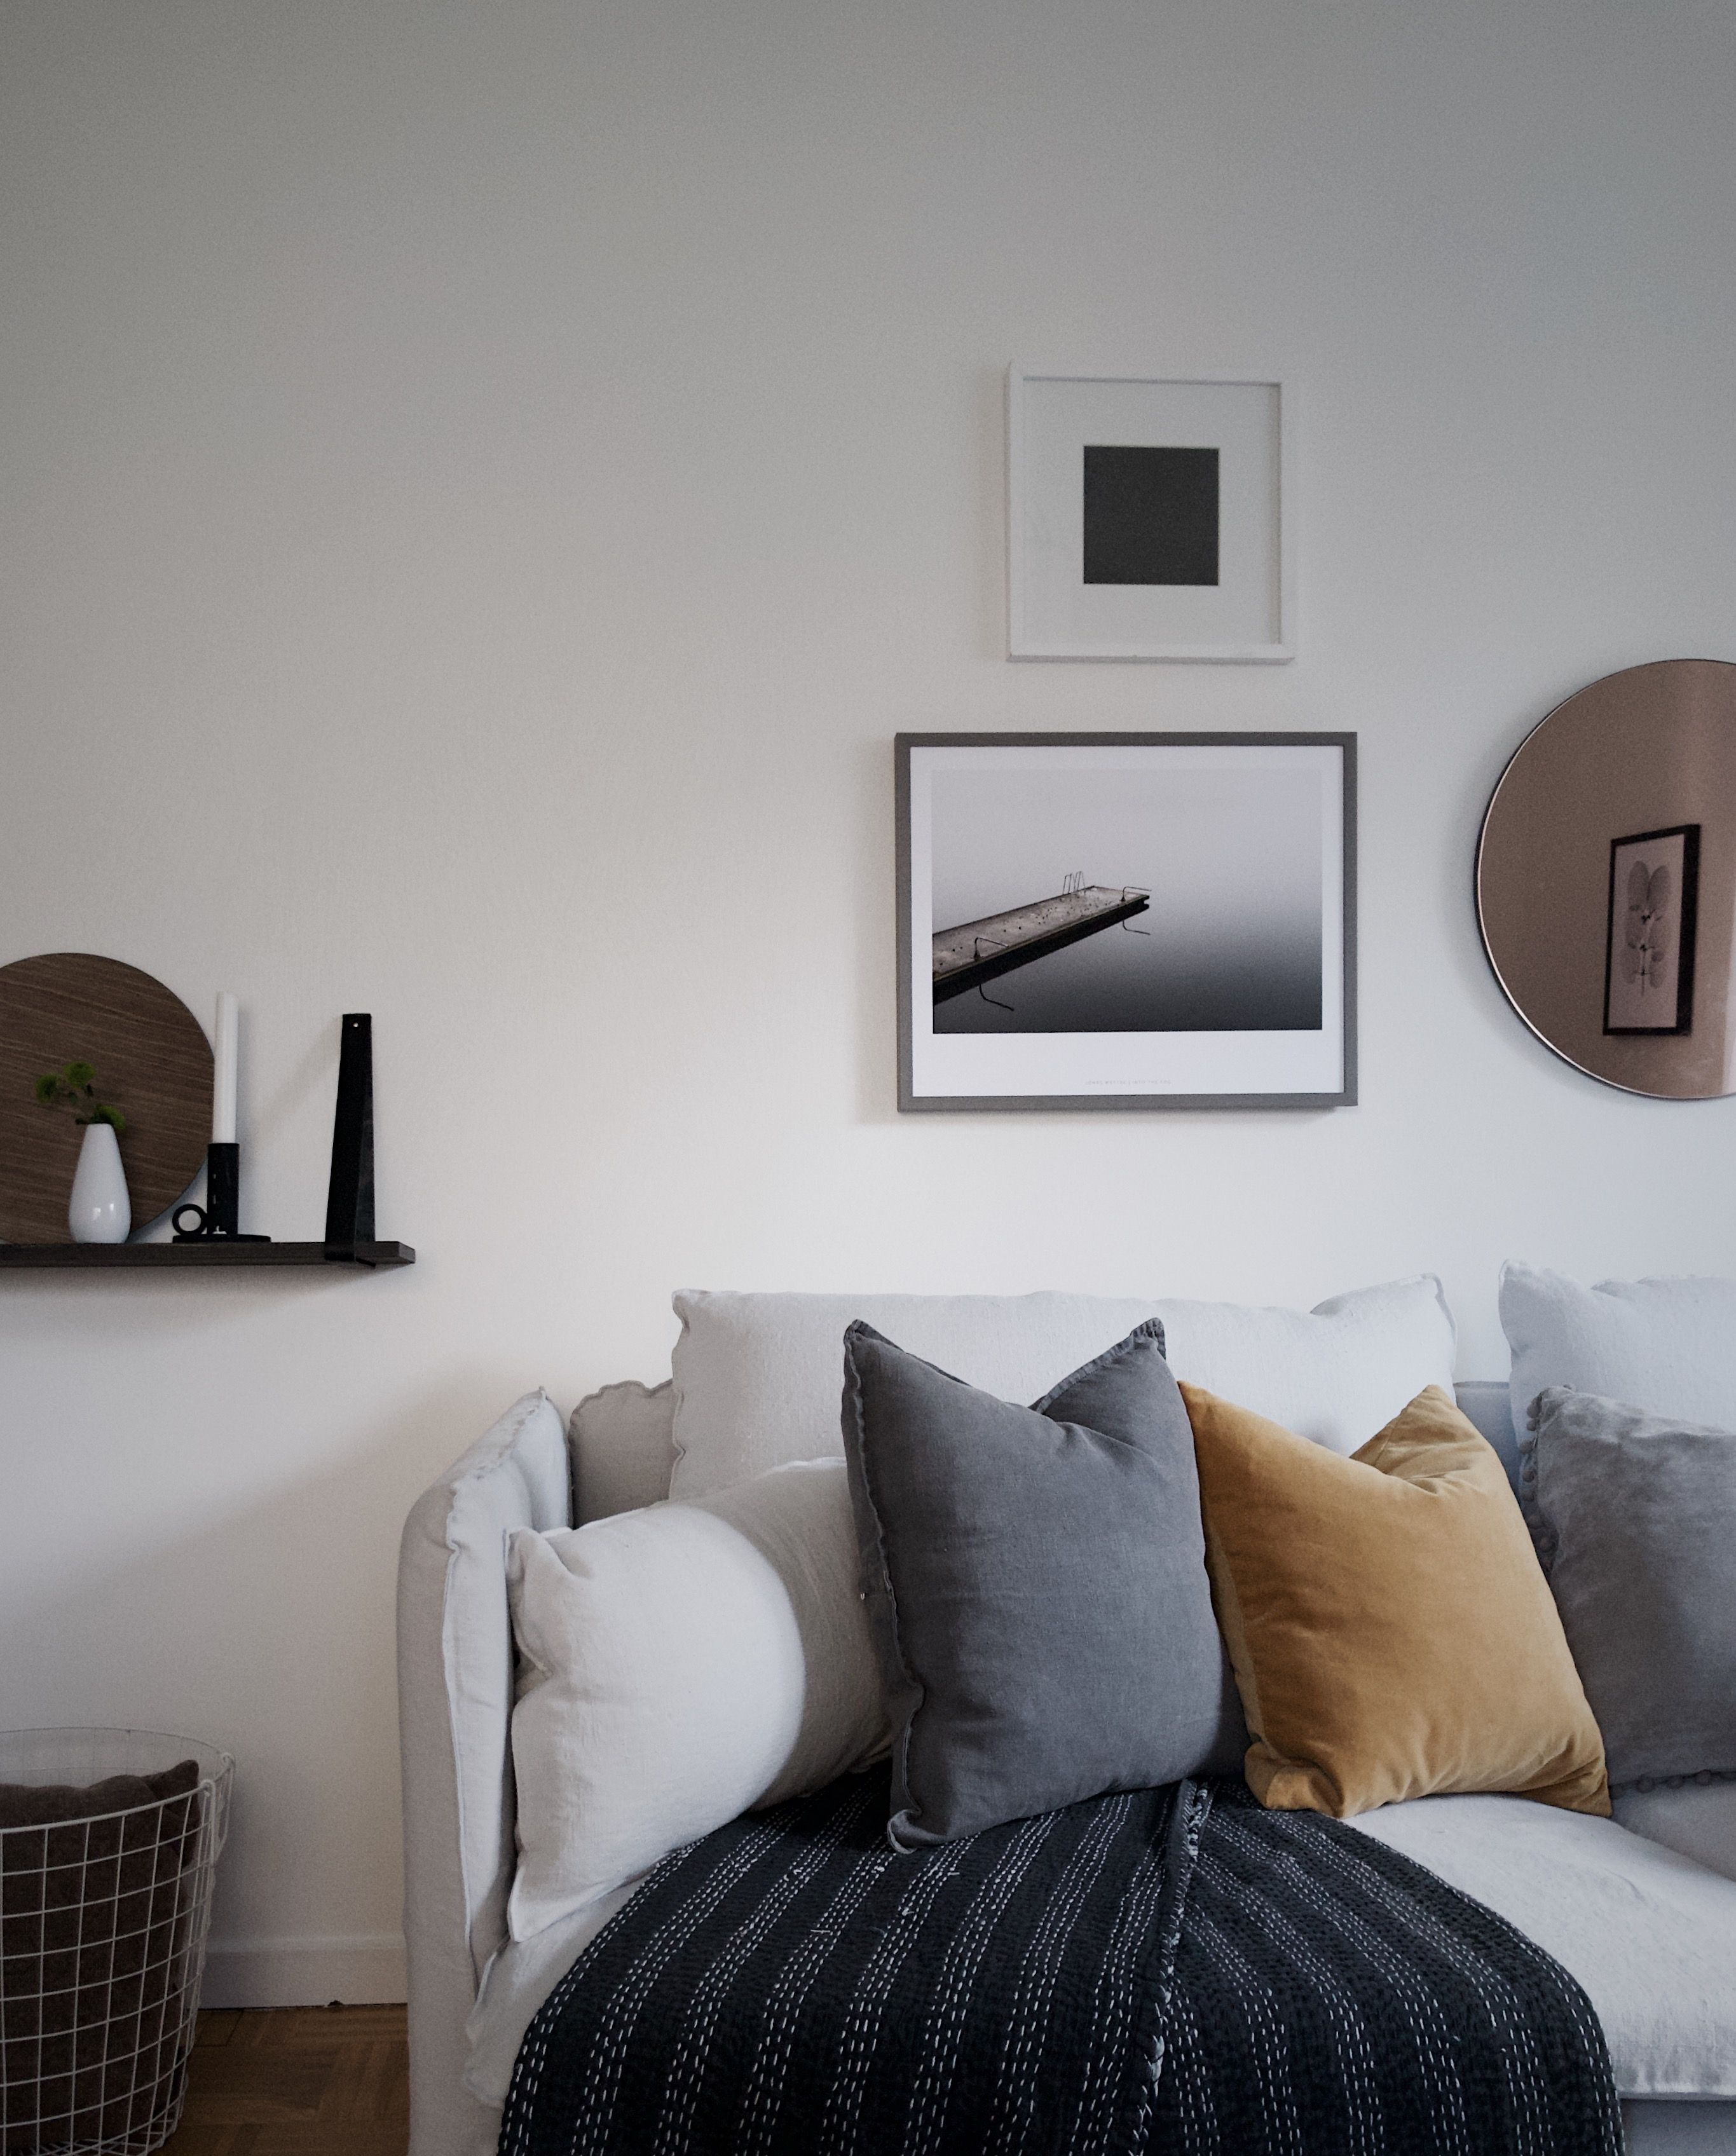 Urban Sofa Gallery Average Height Table Soderhamn 3 Seater Cover Loose Fit For The Love Of Cosy Scandinavian Vibes Ochre Accent Cushion Adds A Pop Colour Grey Linen Minimalist Wall Ikea With Bemz